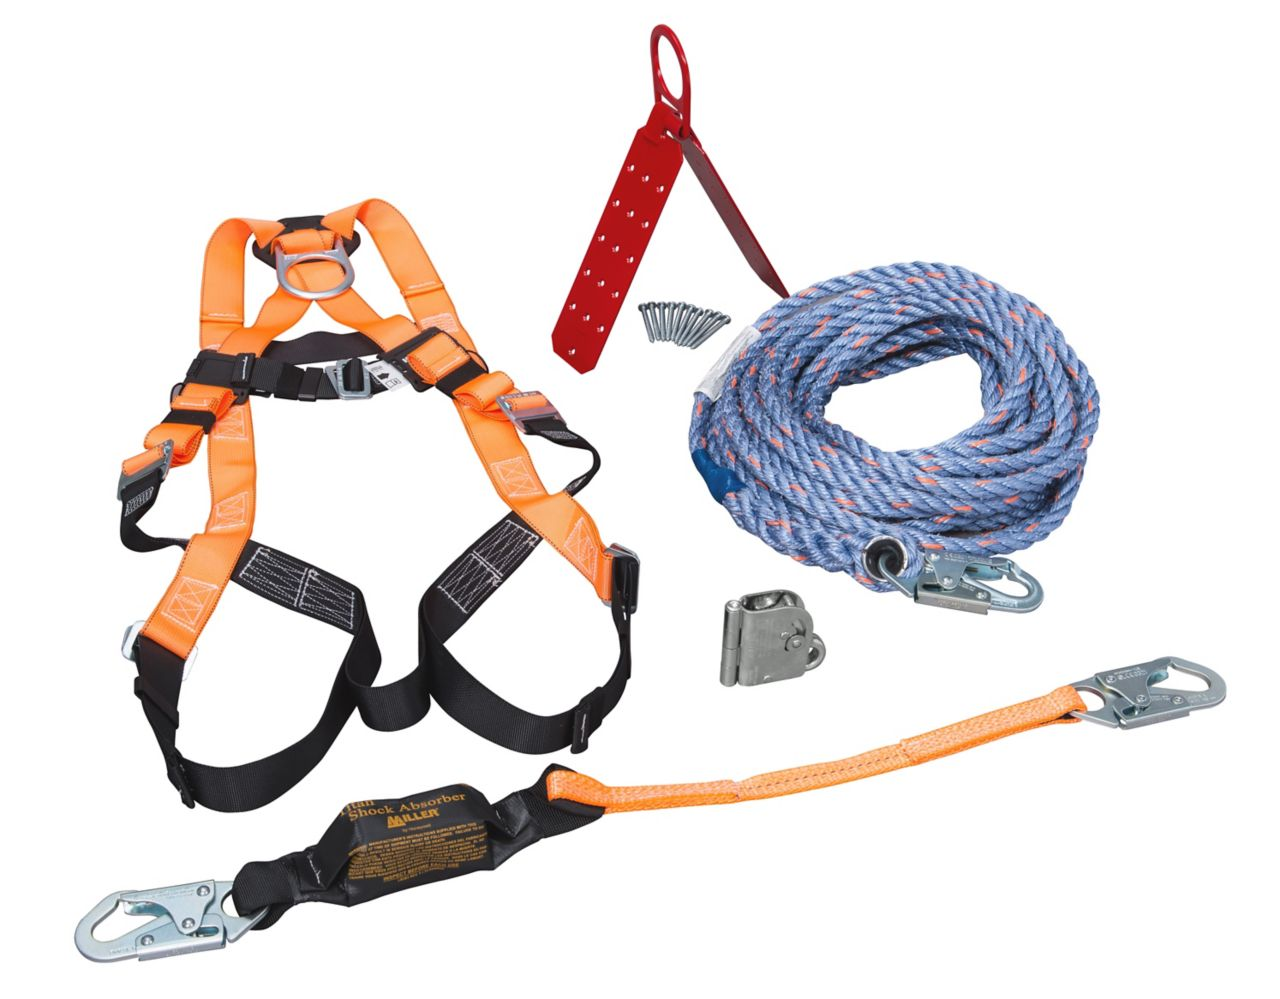 Miller Roofing Fall Protection Kits_2